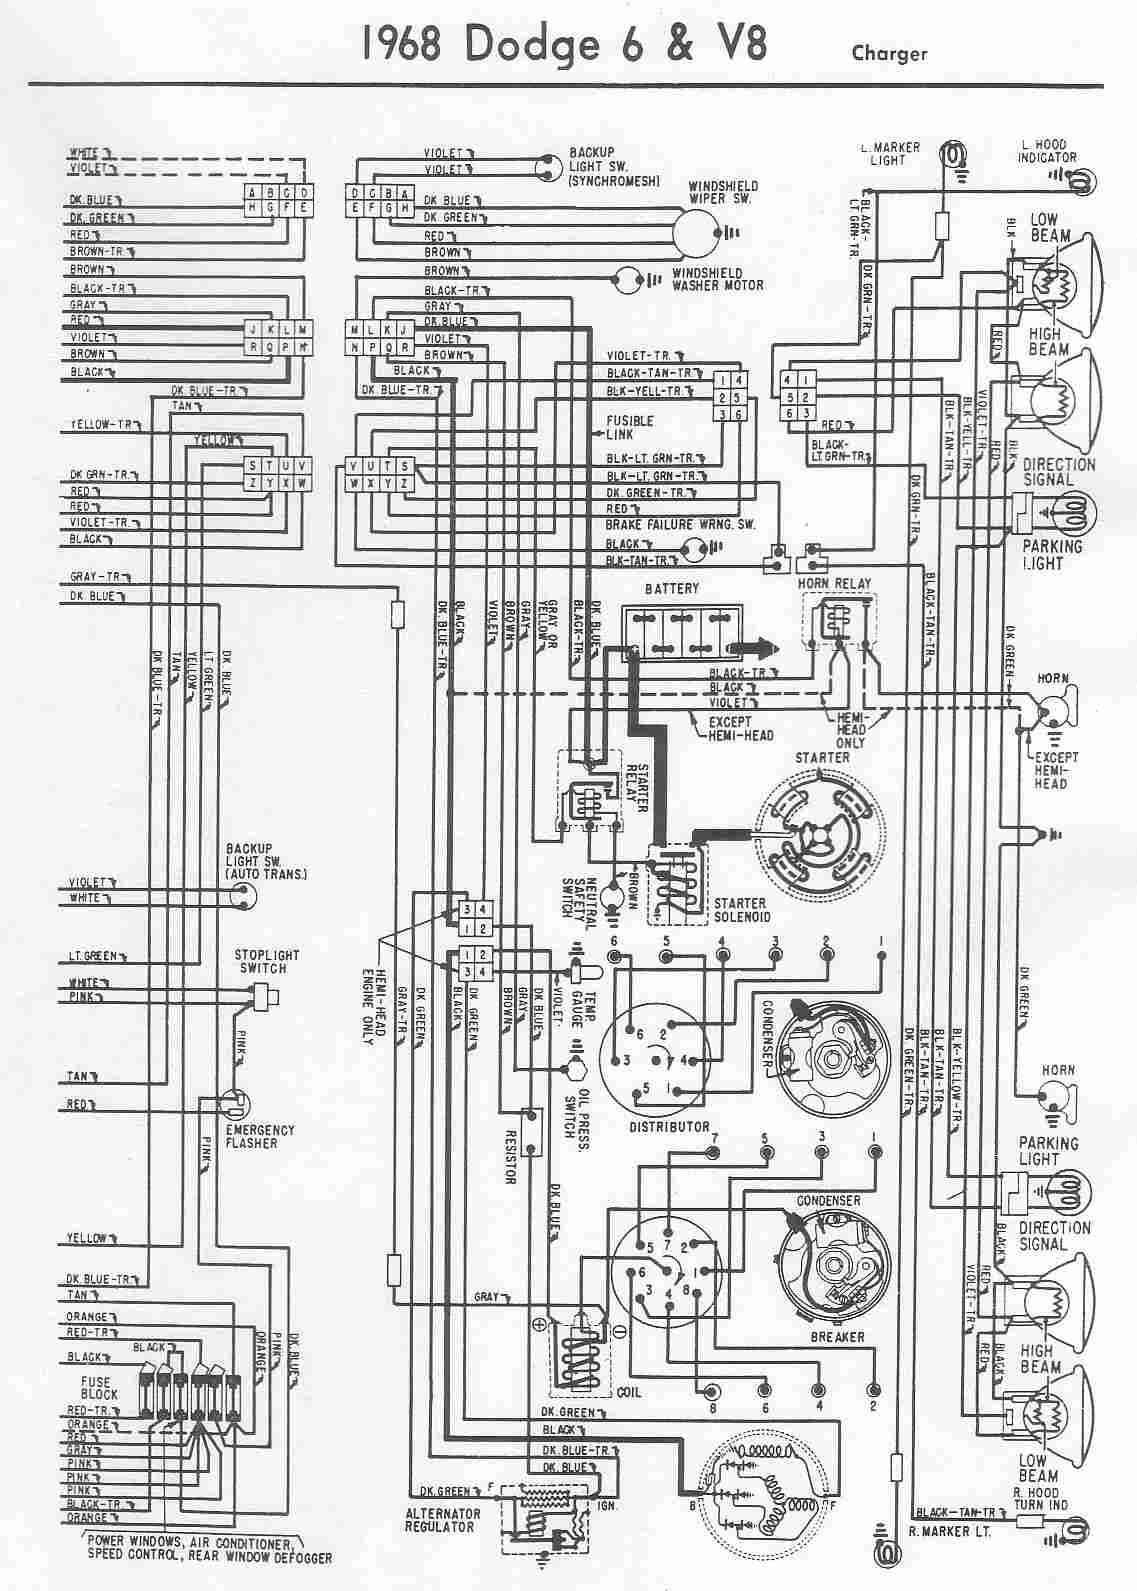 Dodge Car Manuals Wiring Diagrams Pdf Fault Codes Toyota Pickup Diagram Download